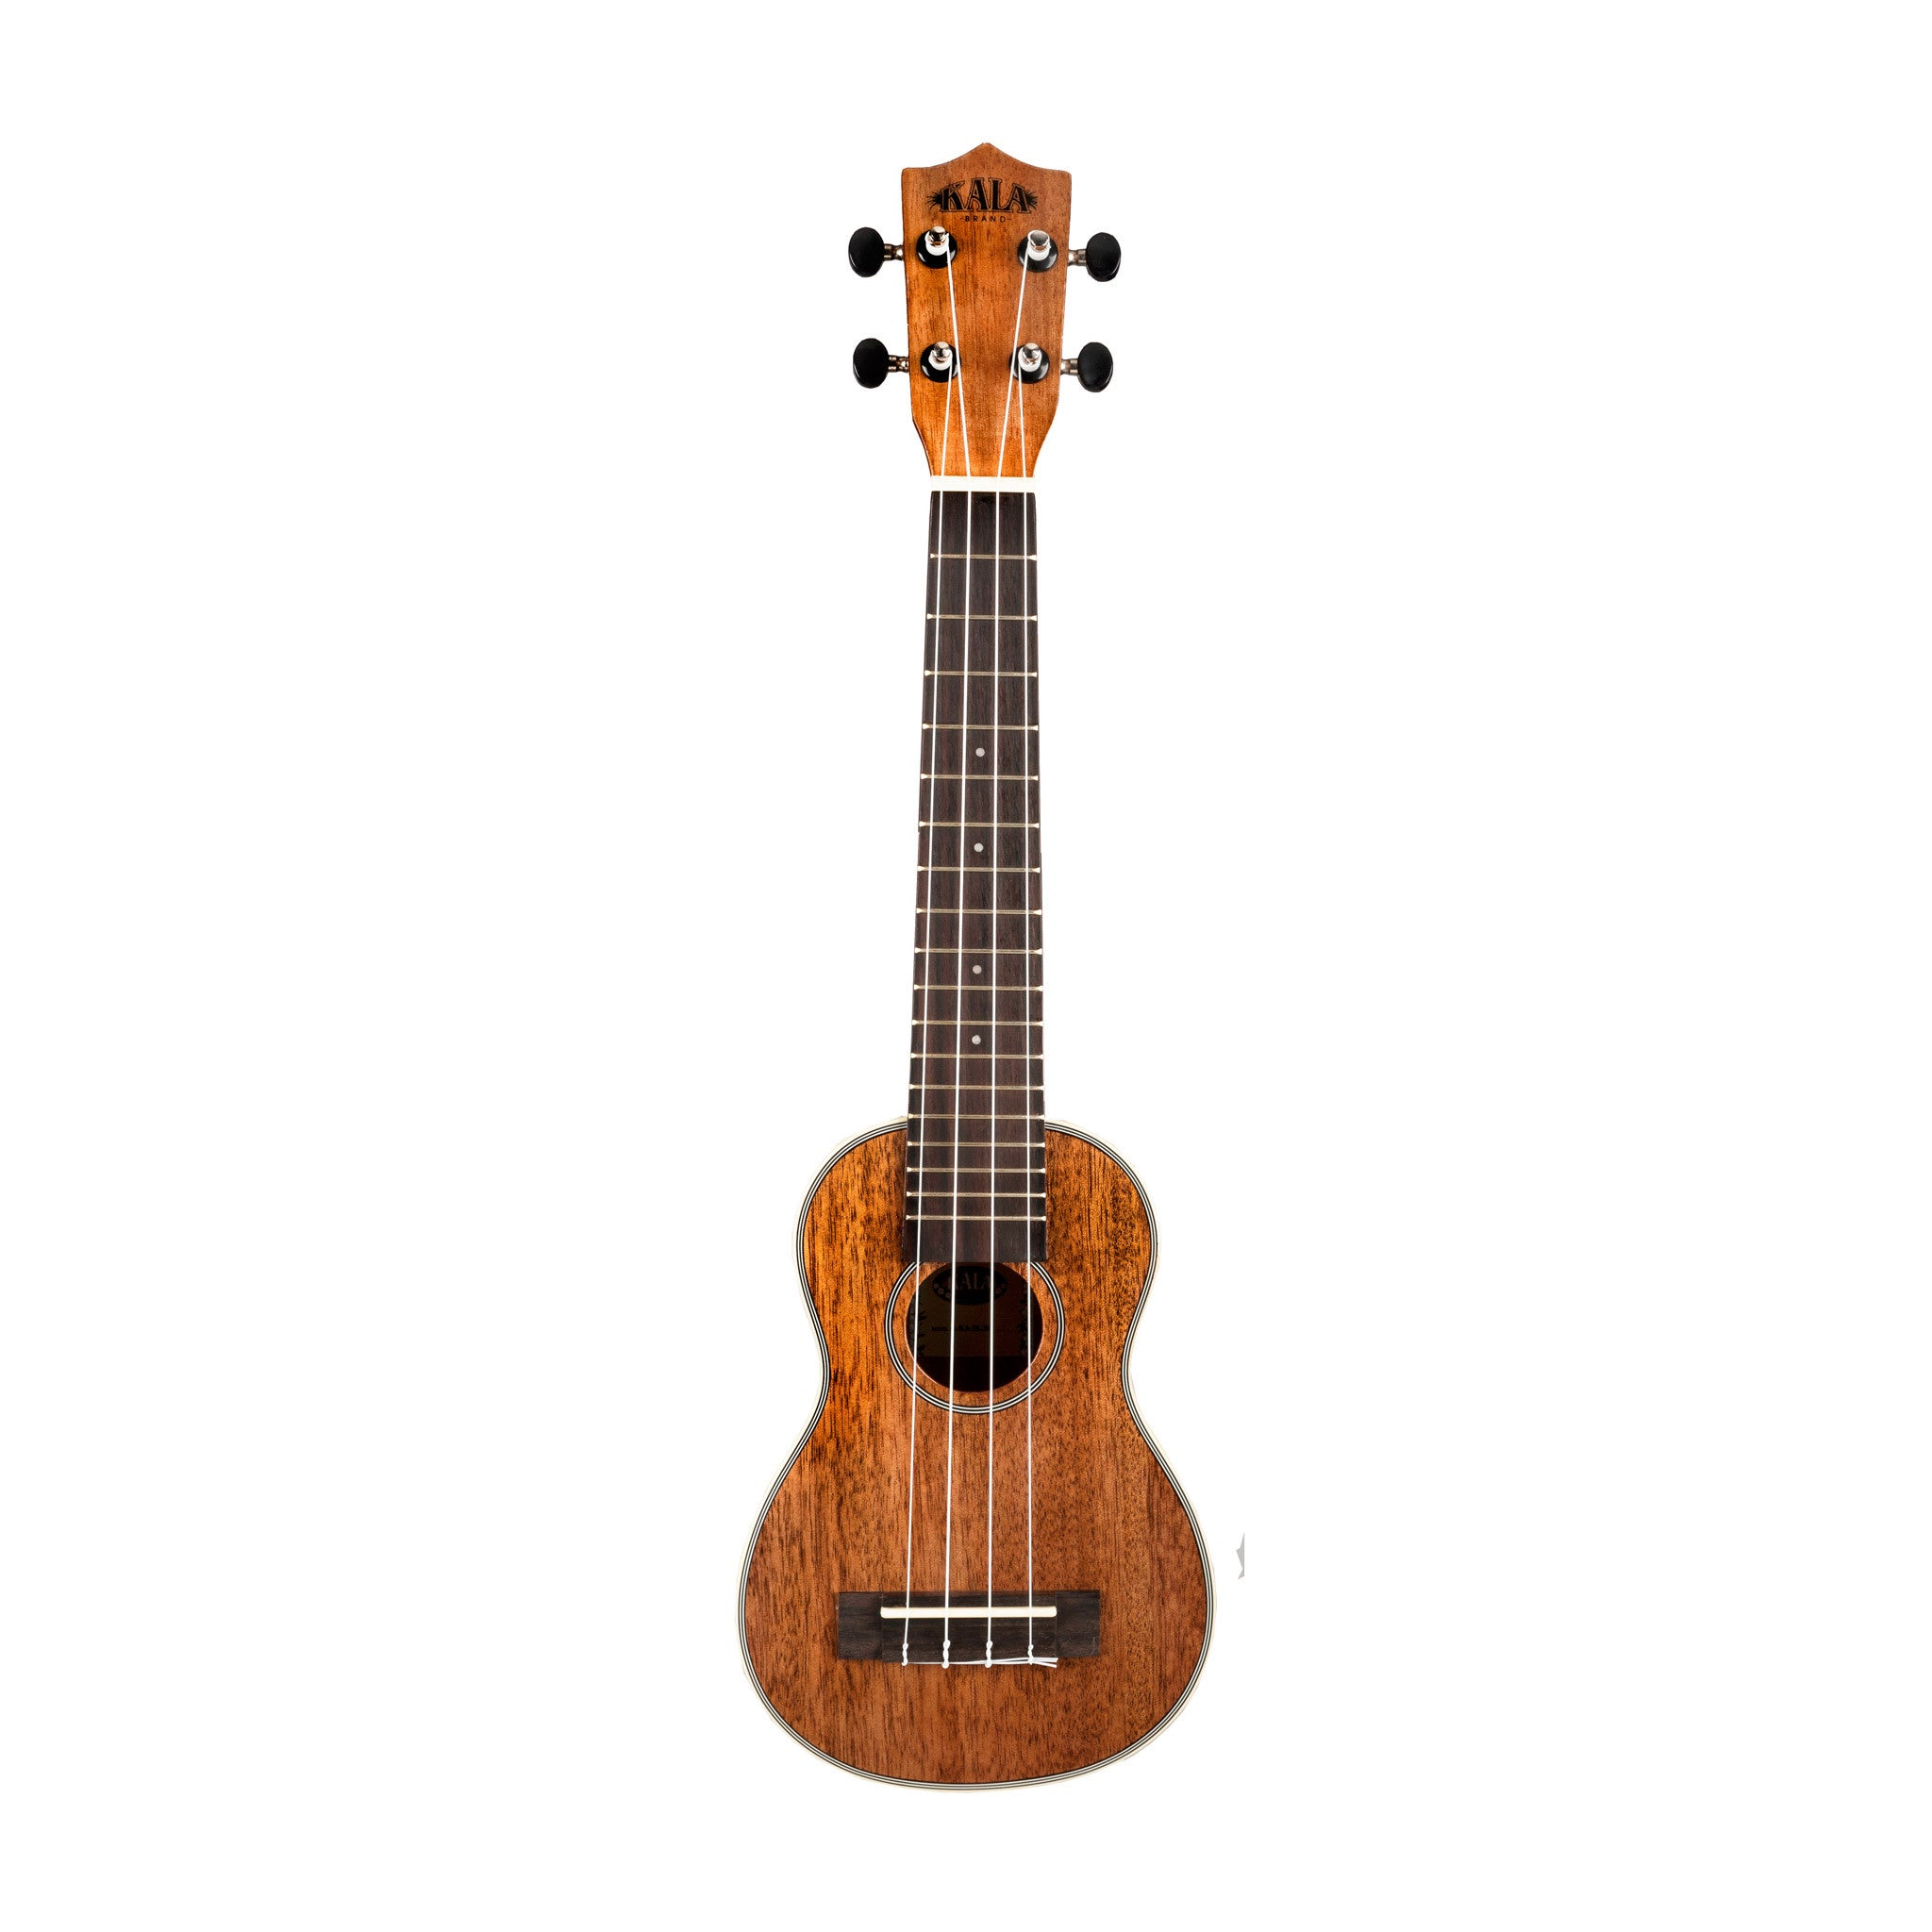 kala brand mahogany long neck soprano ukulele groundswell supply. Black Bedroom Furniture Sets. Home Design Ideas